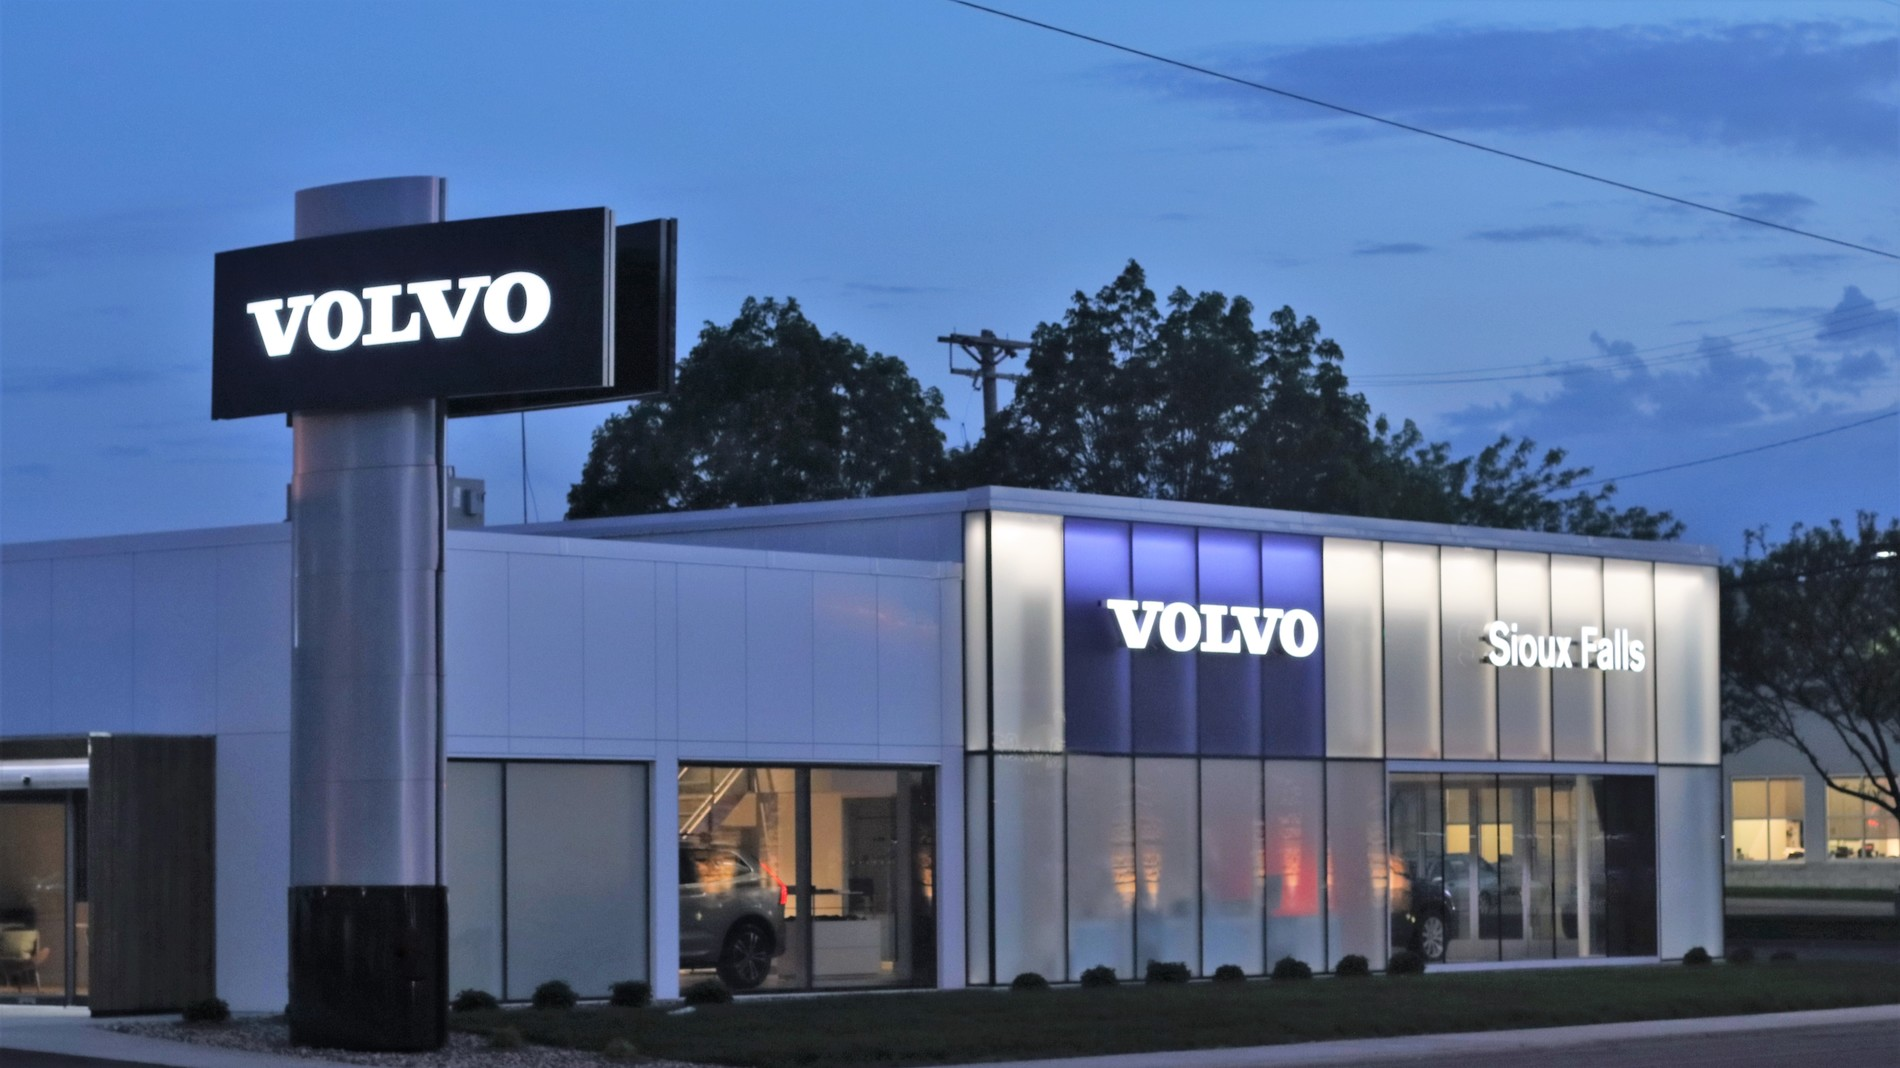 Volvo Cars Sioux Falls in 801 West 41st Street Sioux Falls SD